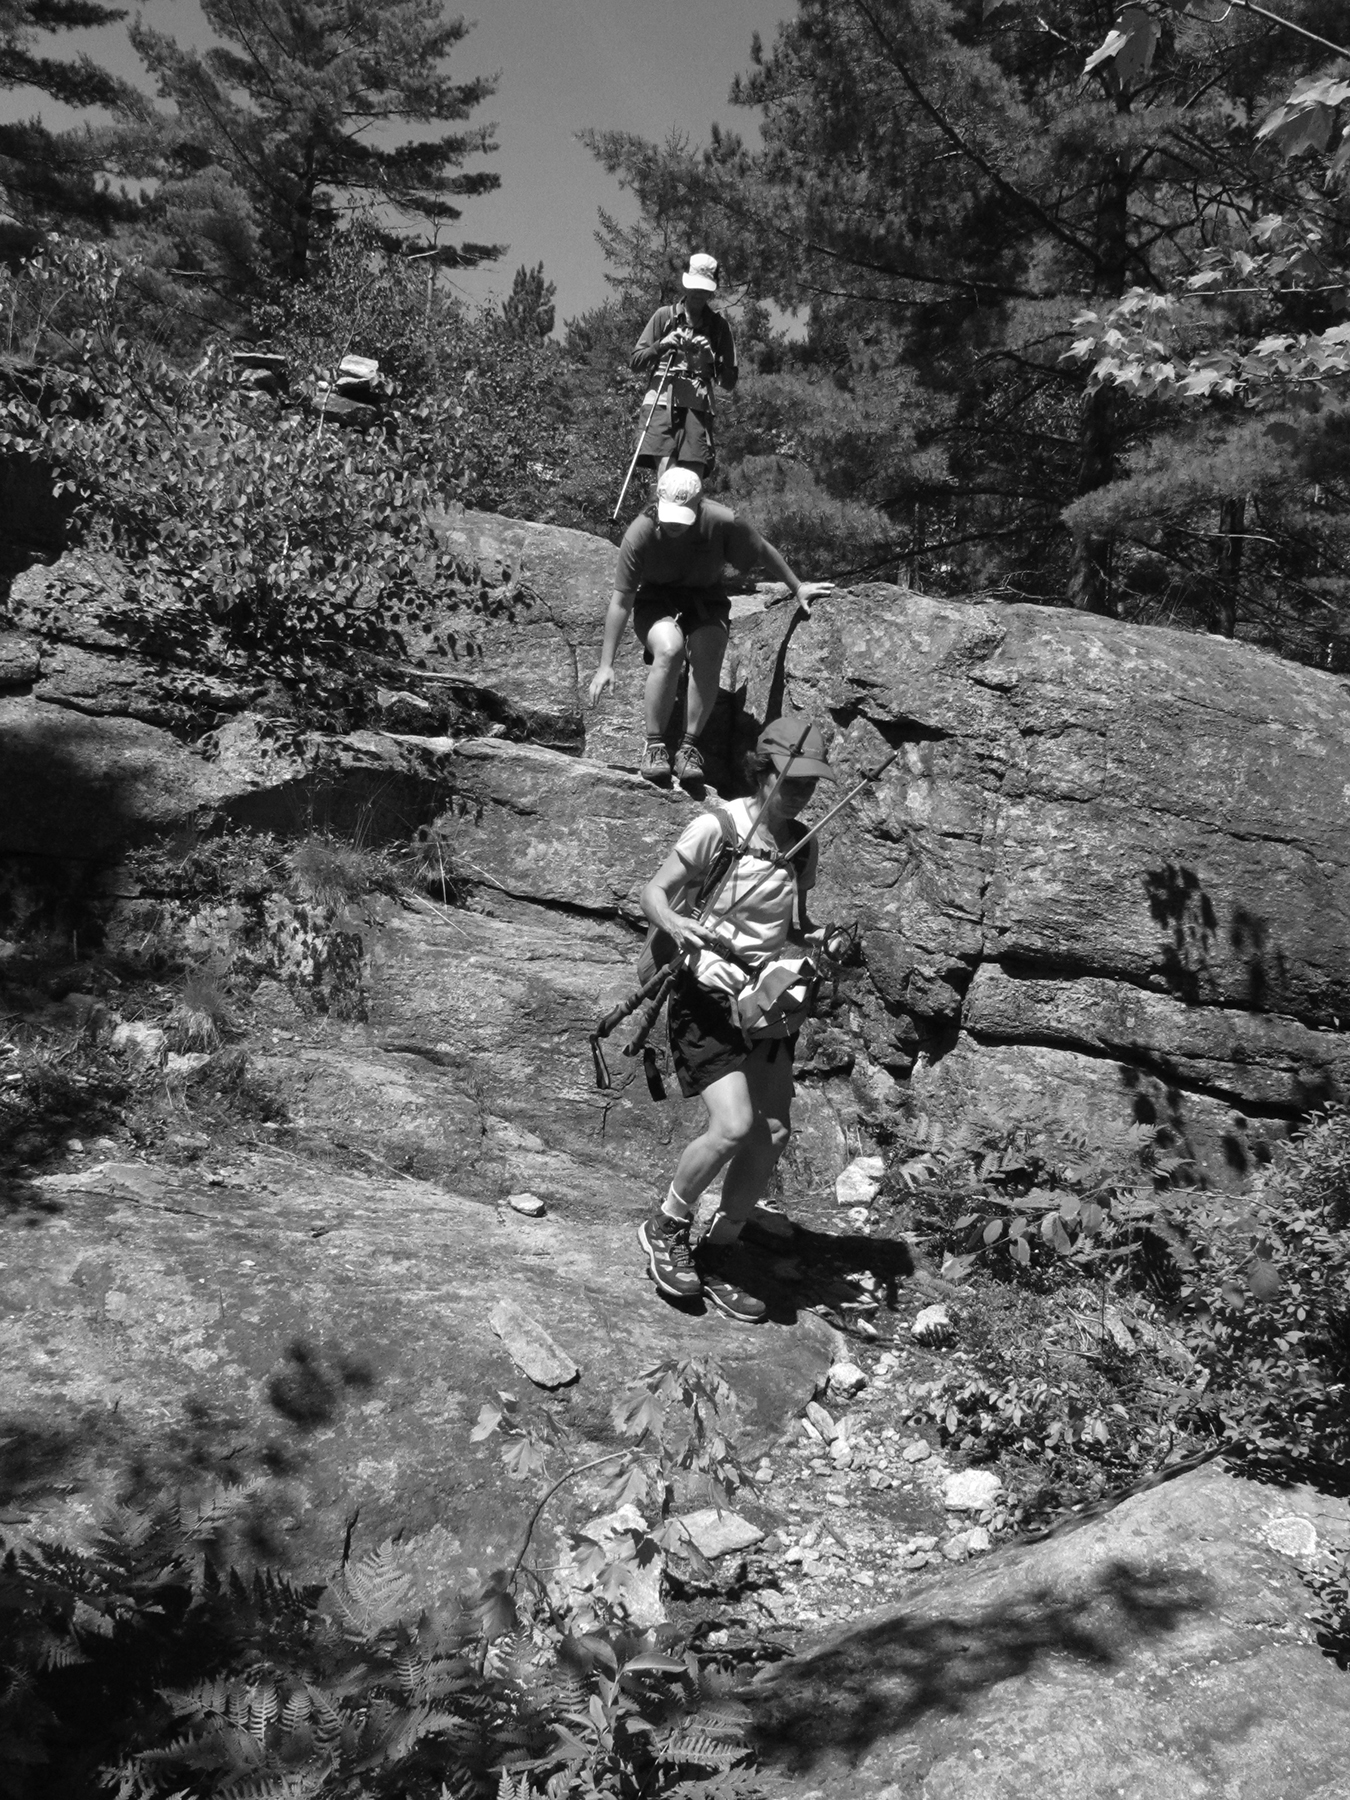 Hikers descending a steep rock section of trail